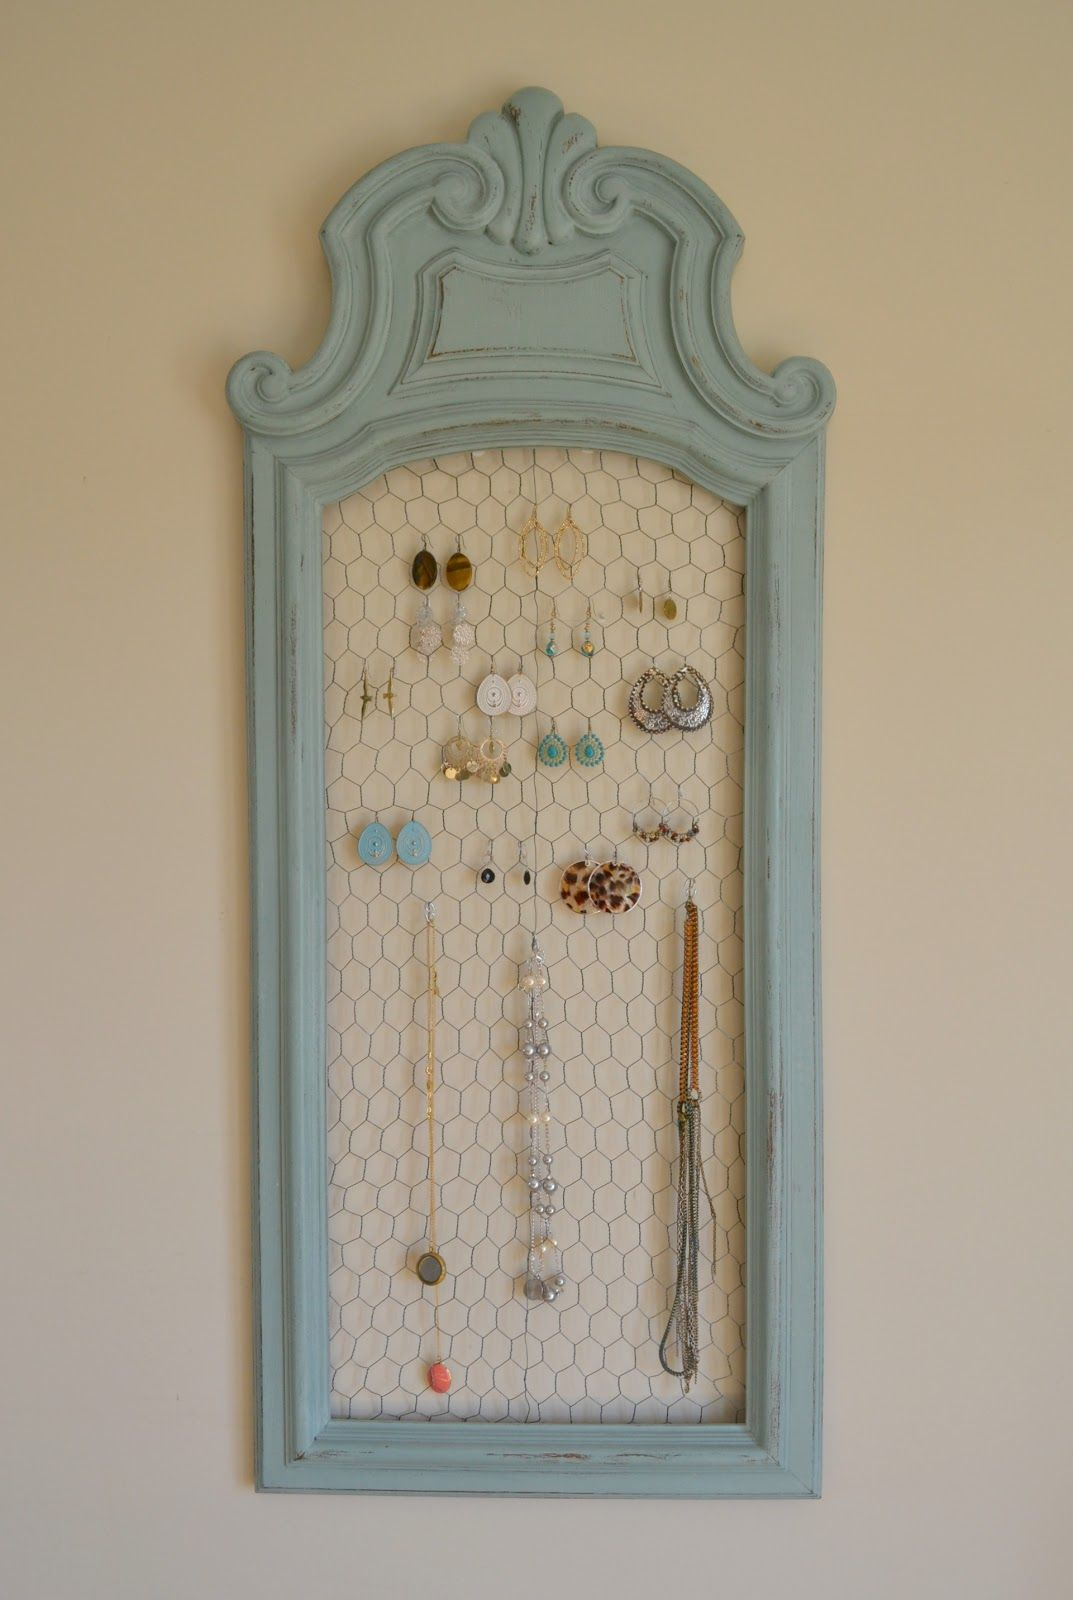 Chicken wire jewelry organizer Jewellery displays Pinterest